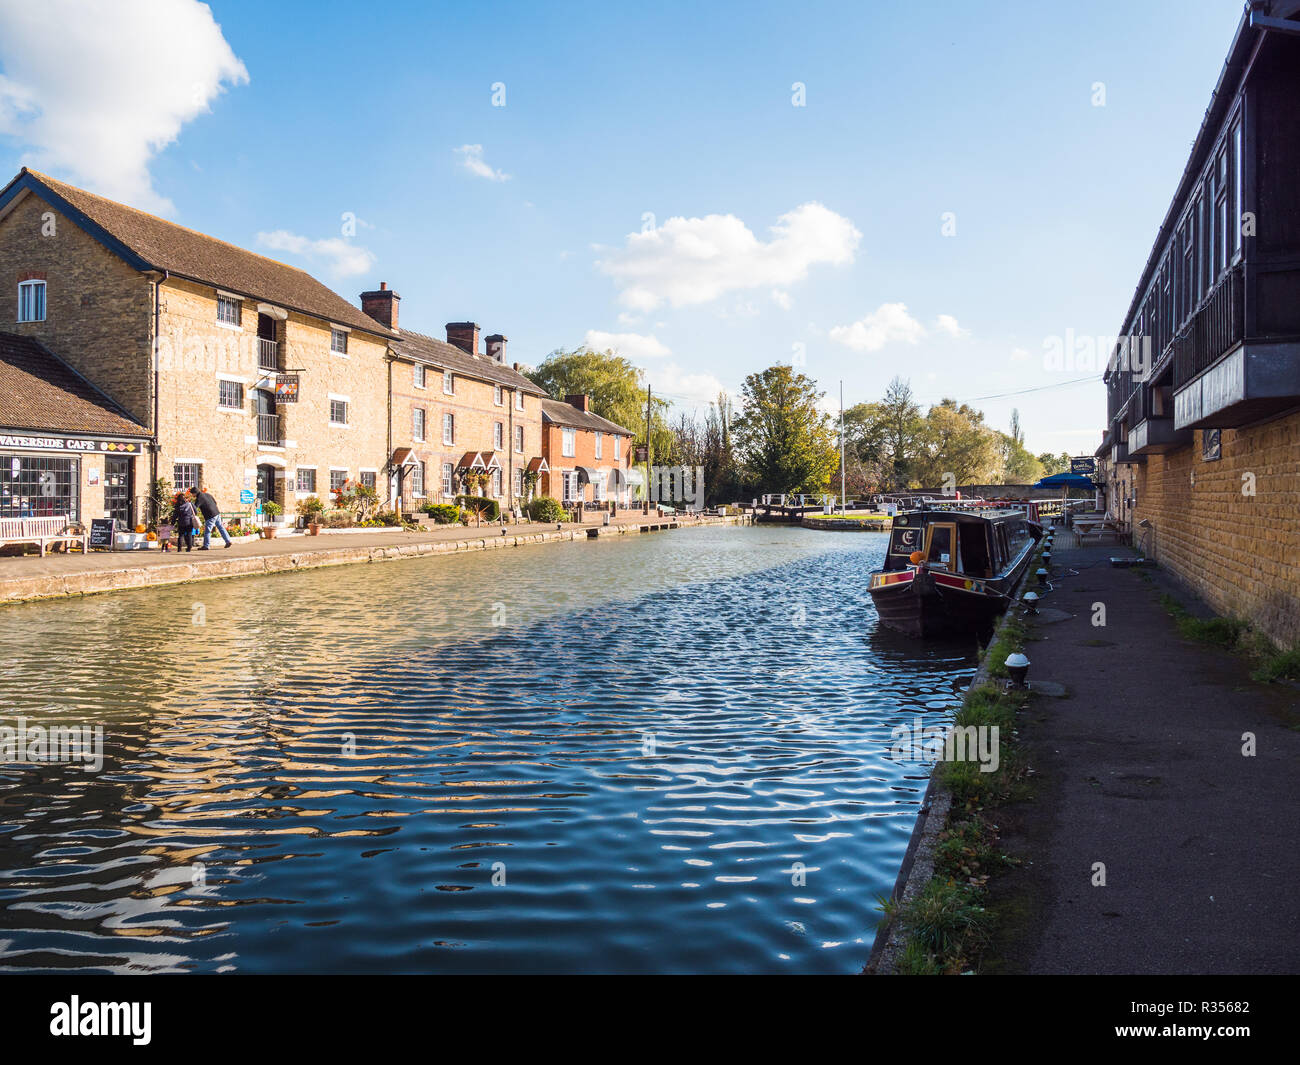 Stoke Bruerne UK October 31 2018: canal river with moored boats and shop around it in village in northamptonshire, england. - Stock Image